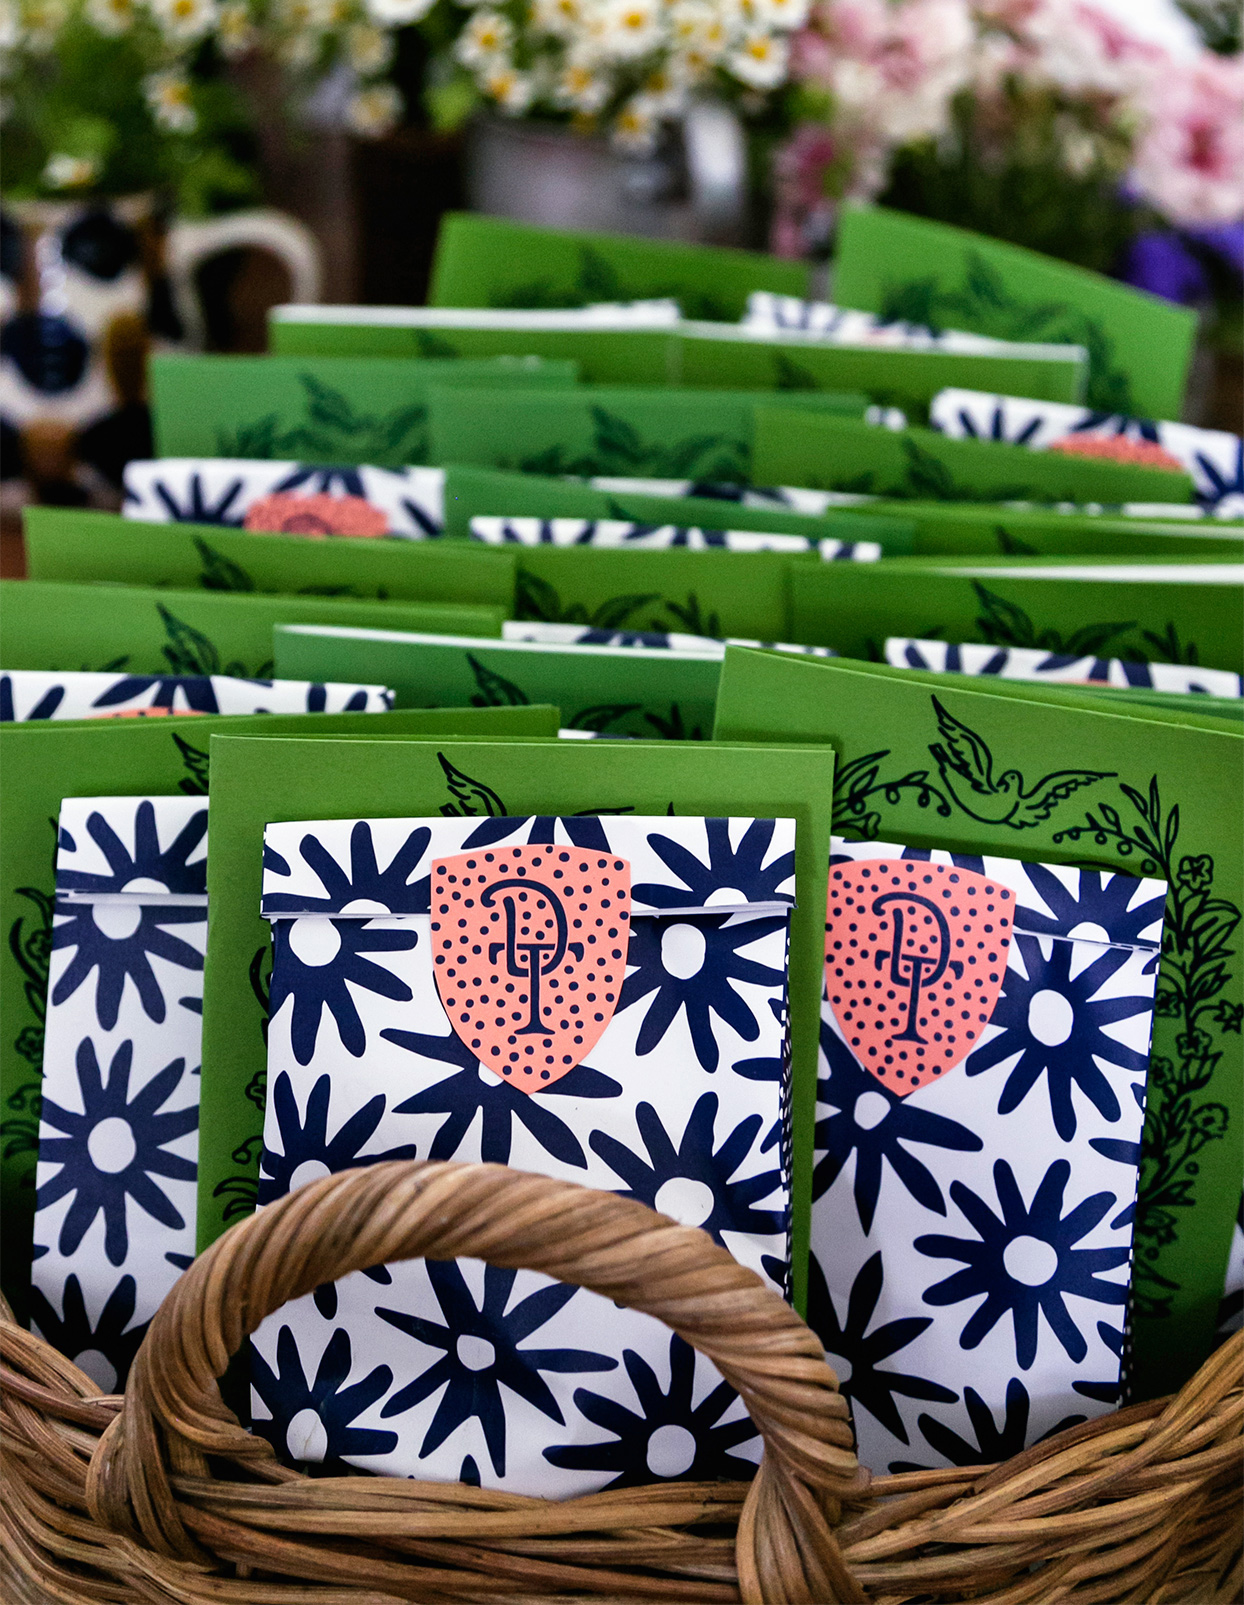 colorful and whimsical goodie bags